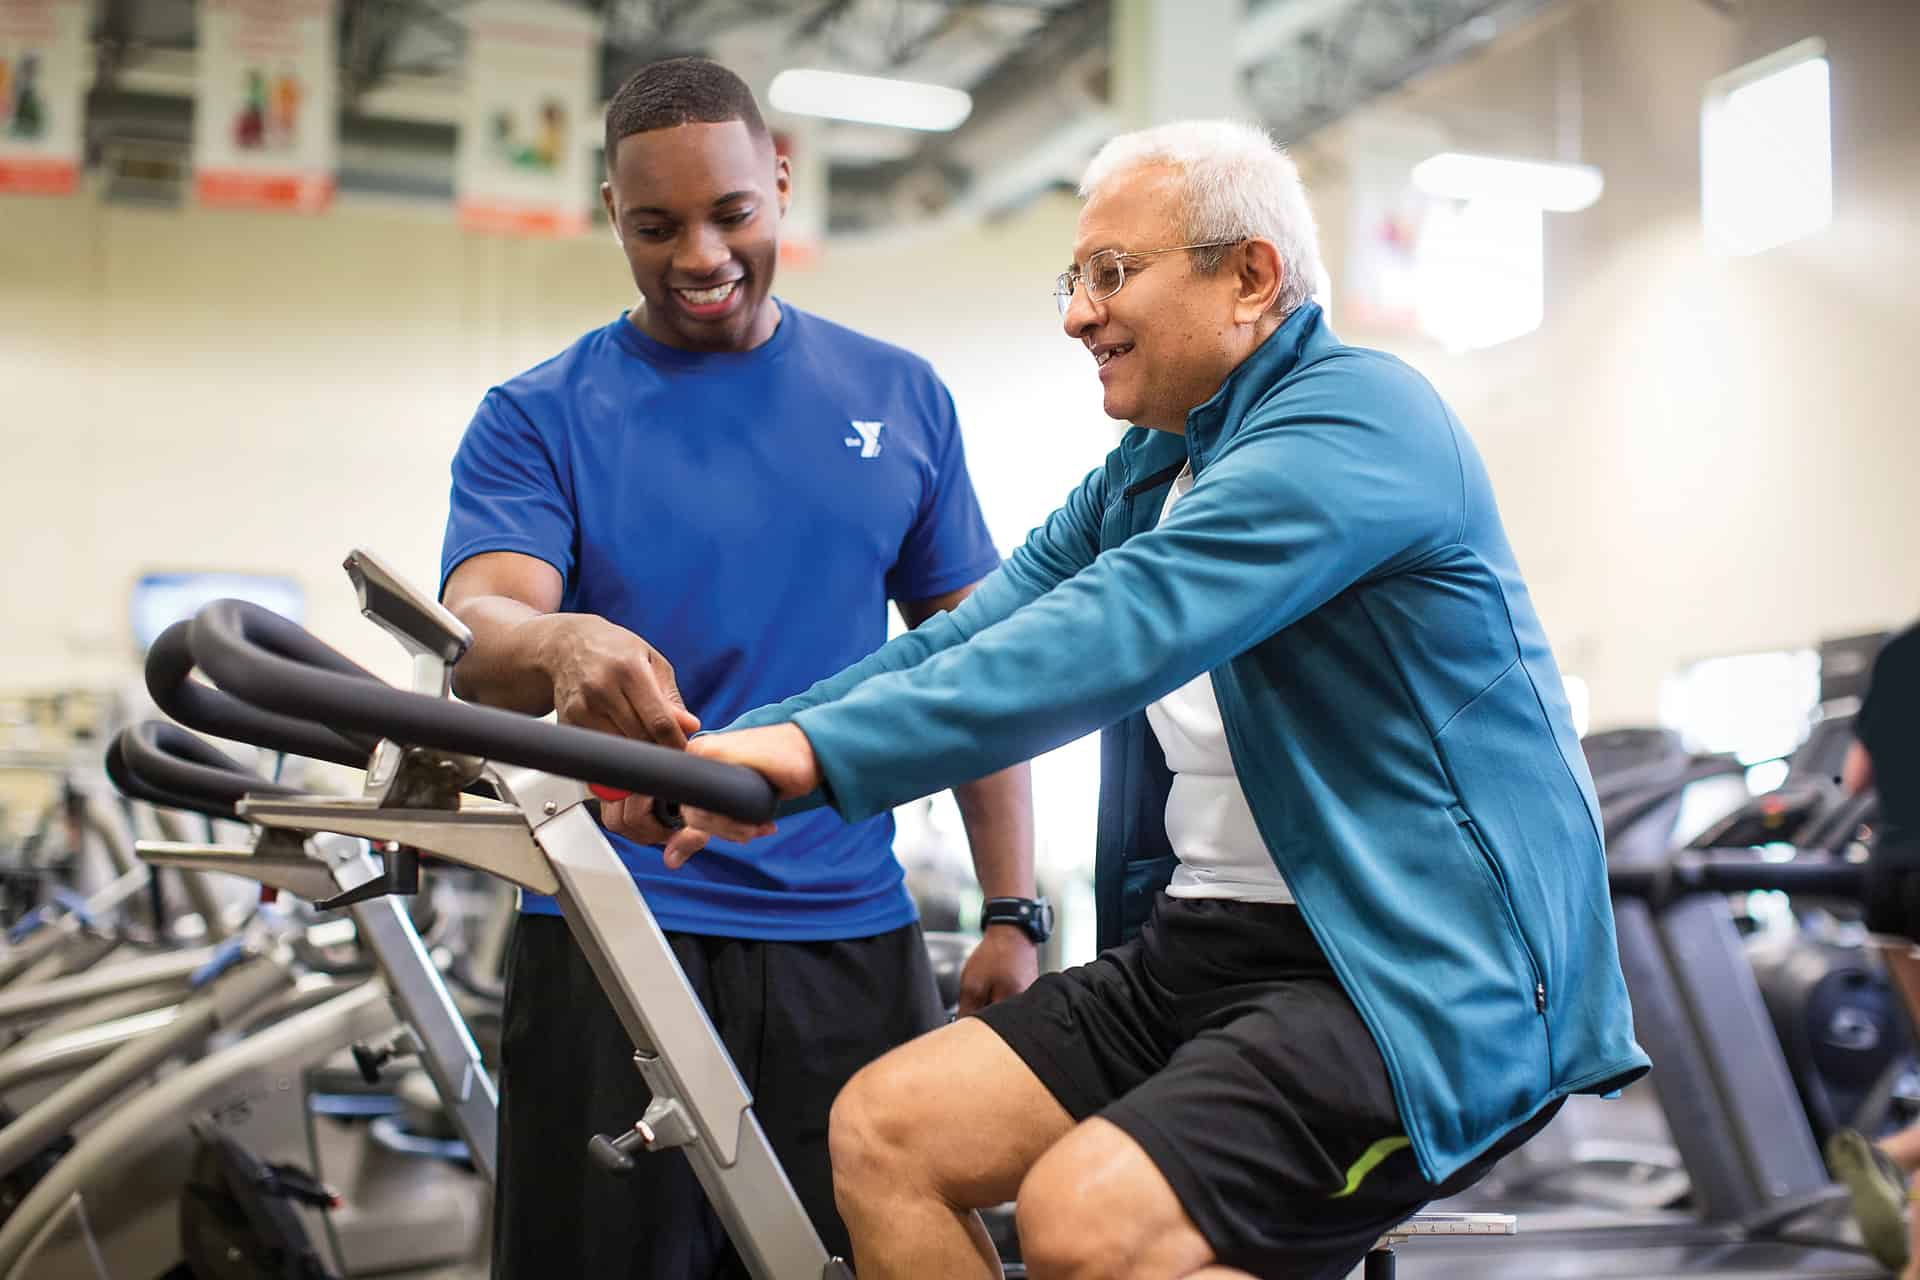 Male personal trainer showing senior how to use stationary bike functions.